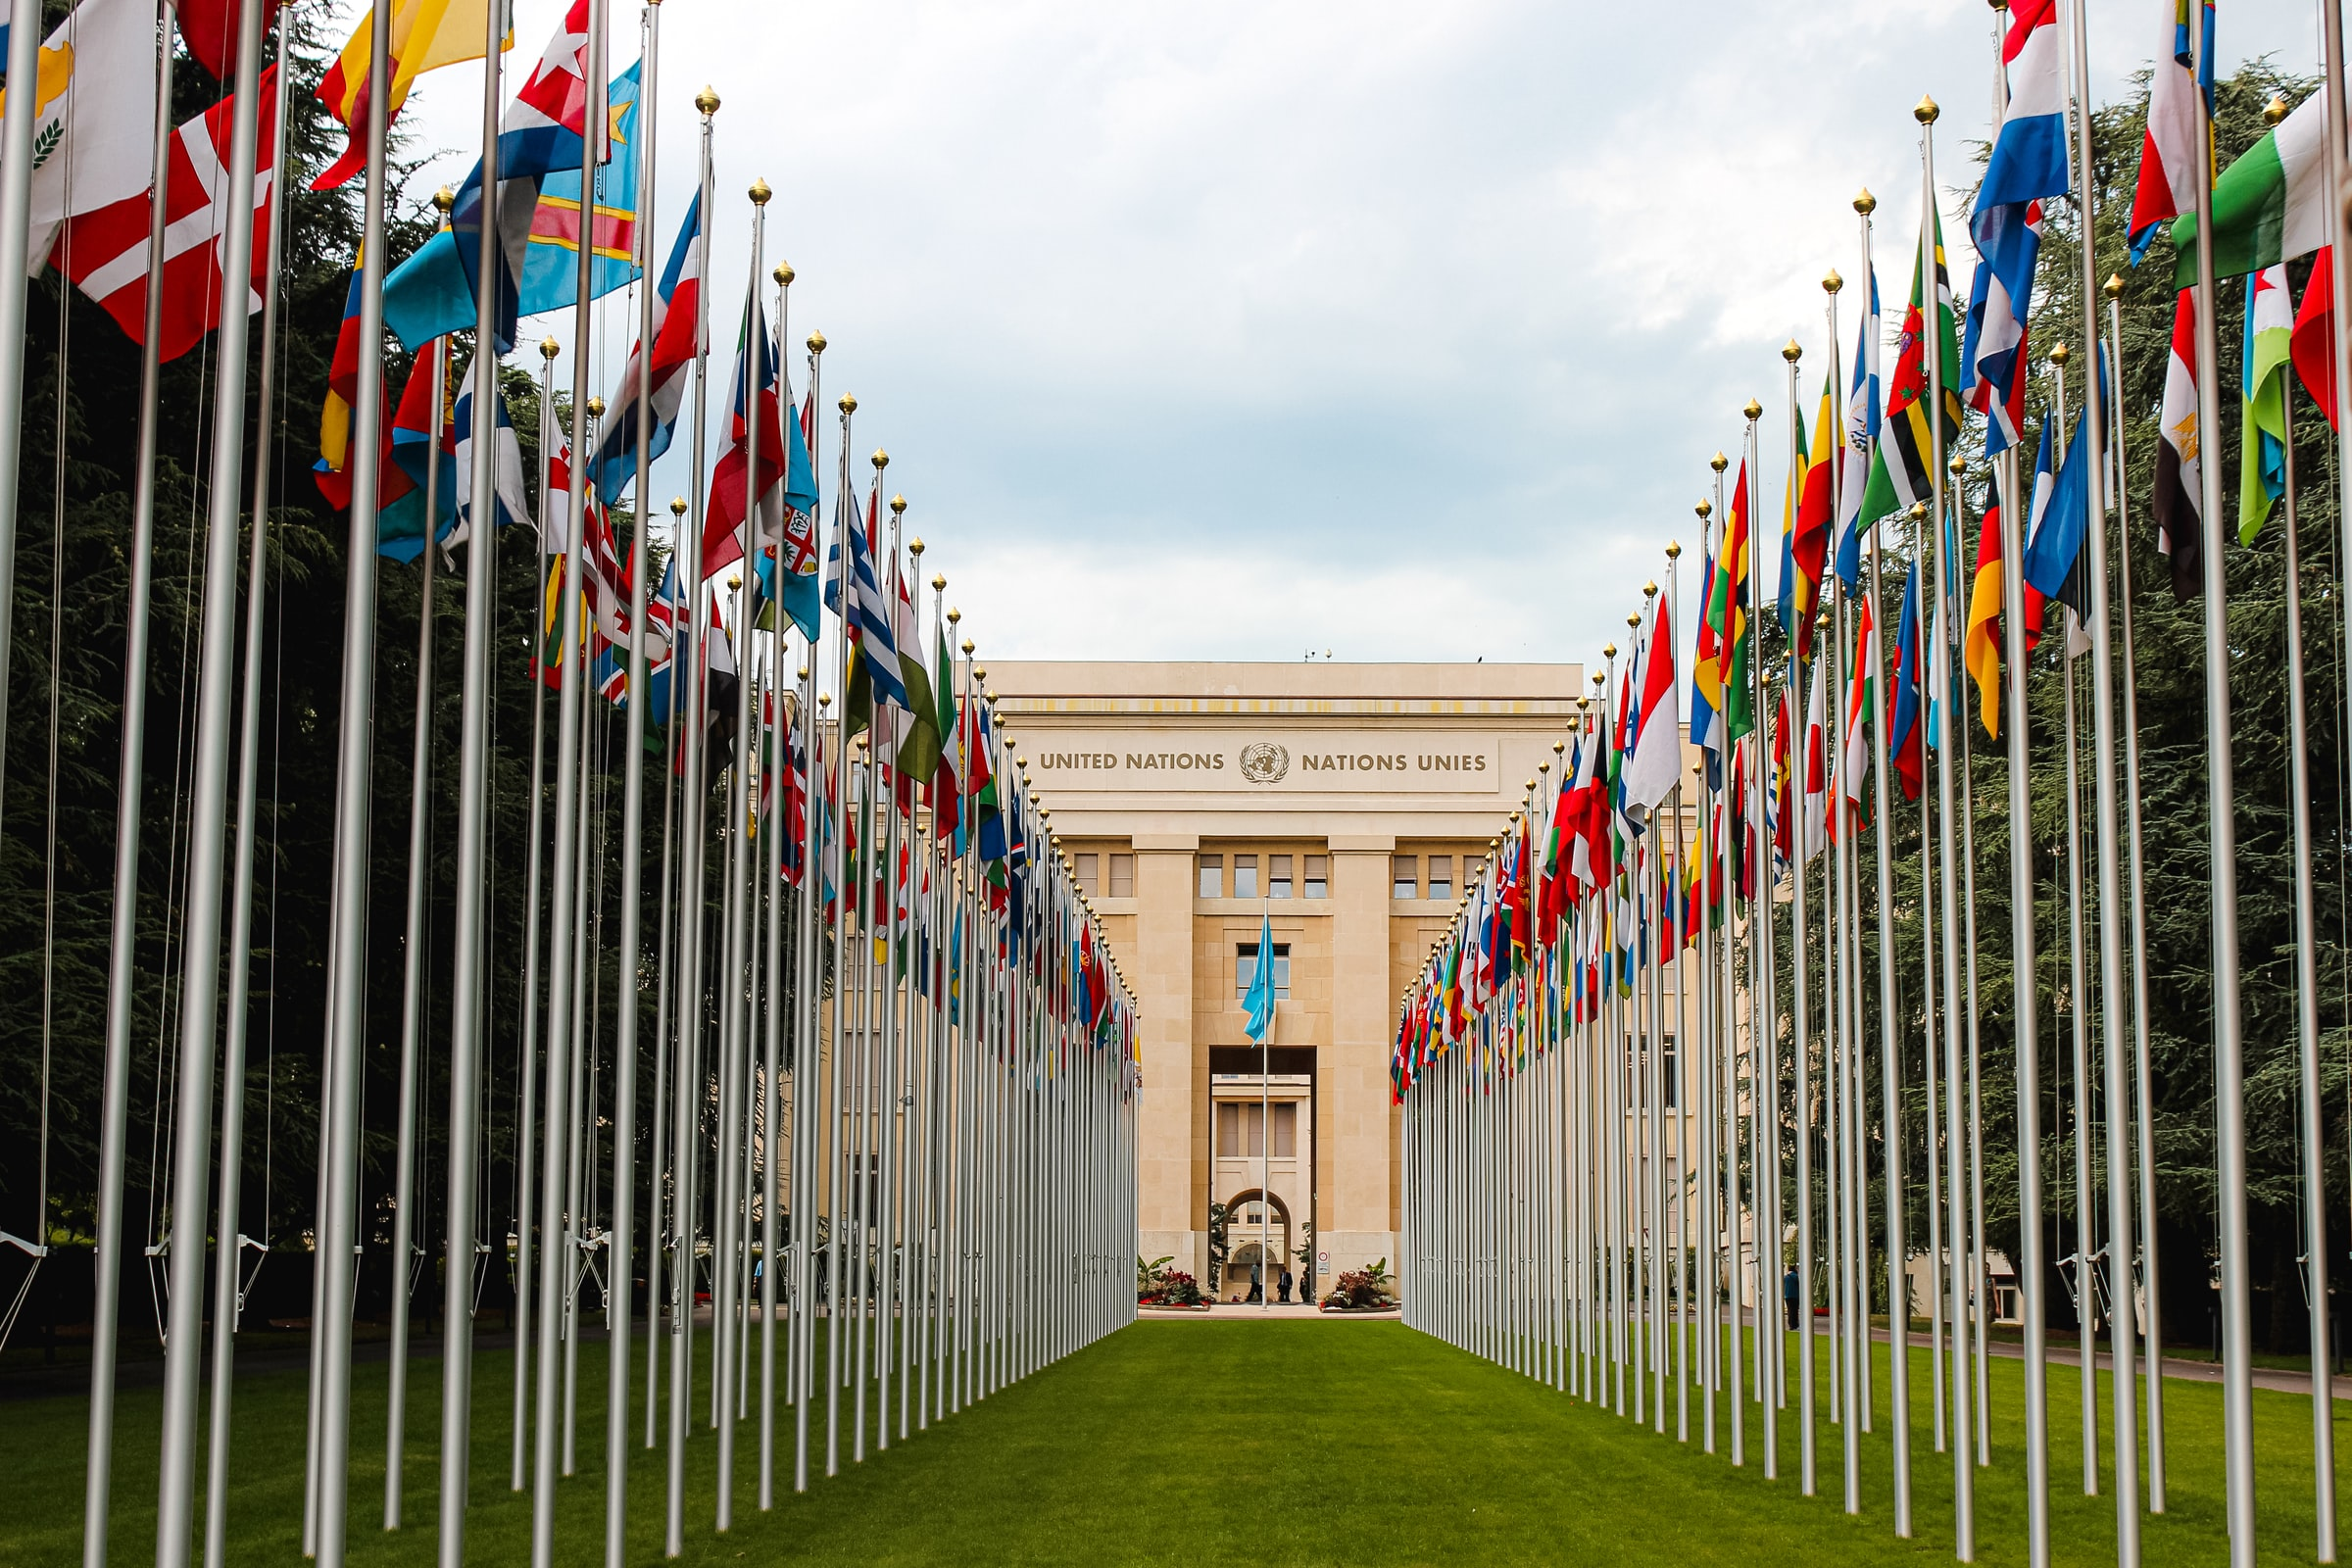 The UN Is Trusted More Than Any Other Governmental Organization, Global Survey Finds